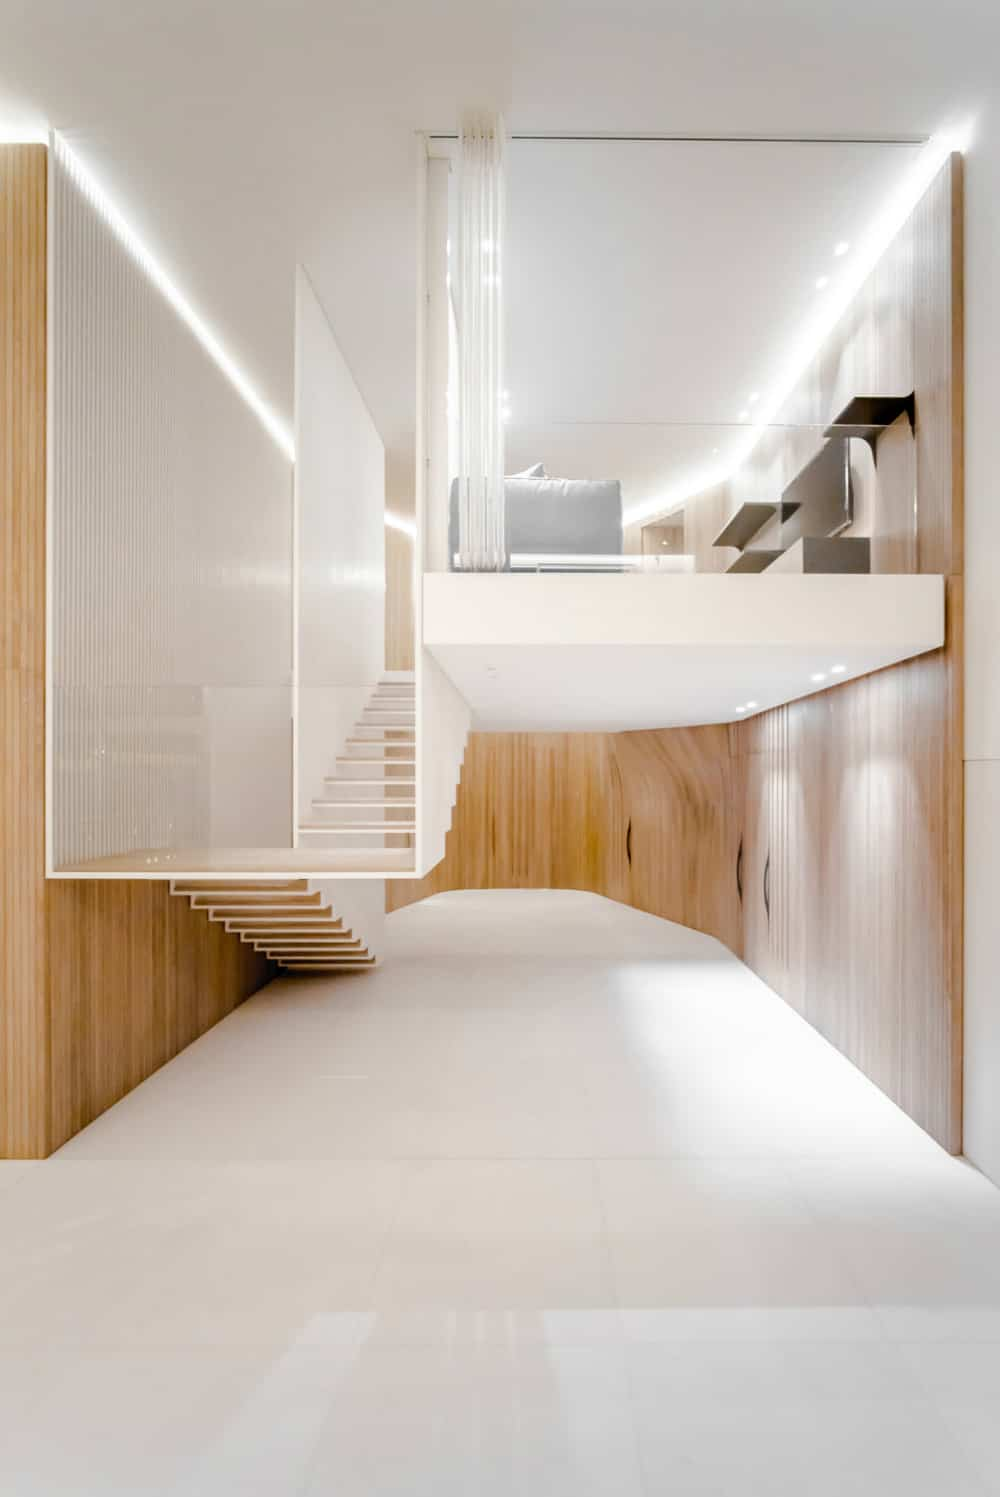 Mezzanine sits in a pocket of space without a strict outline